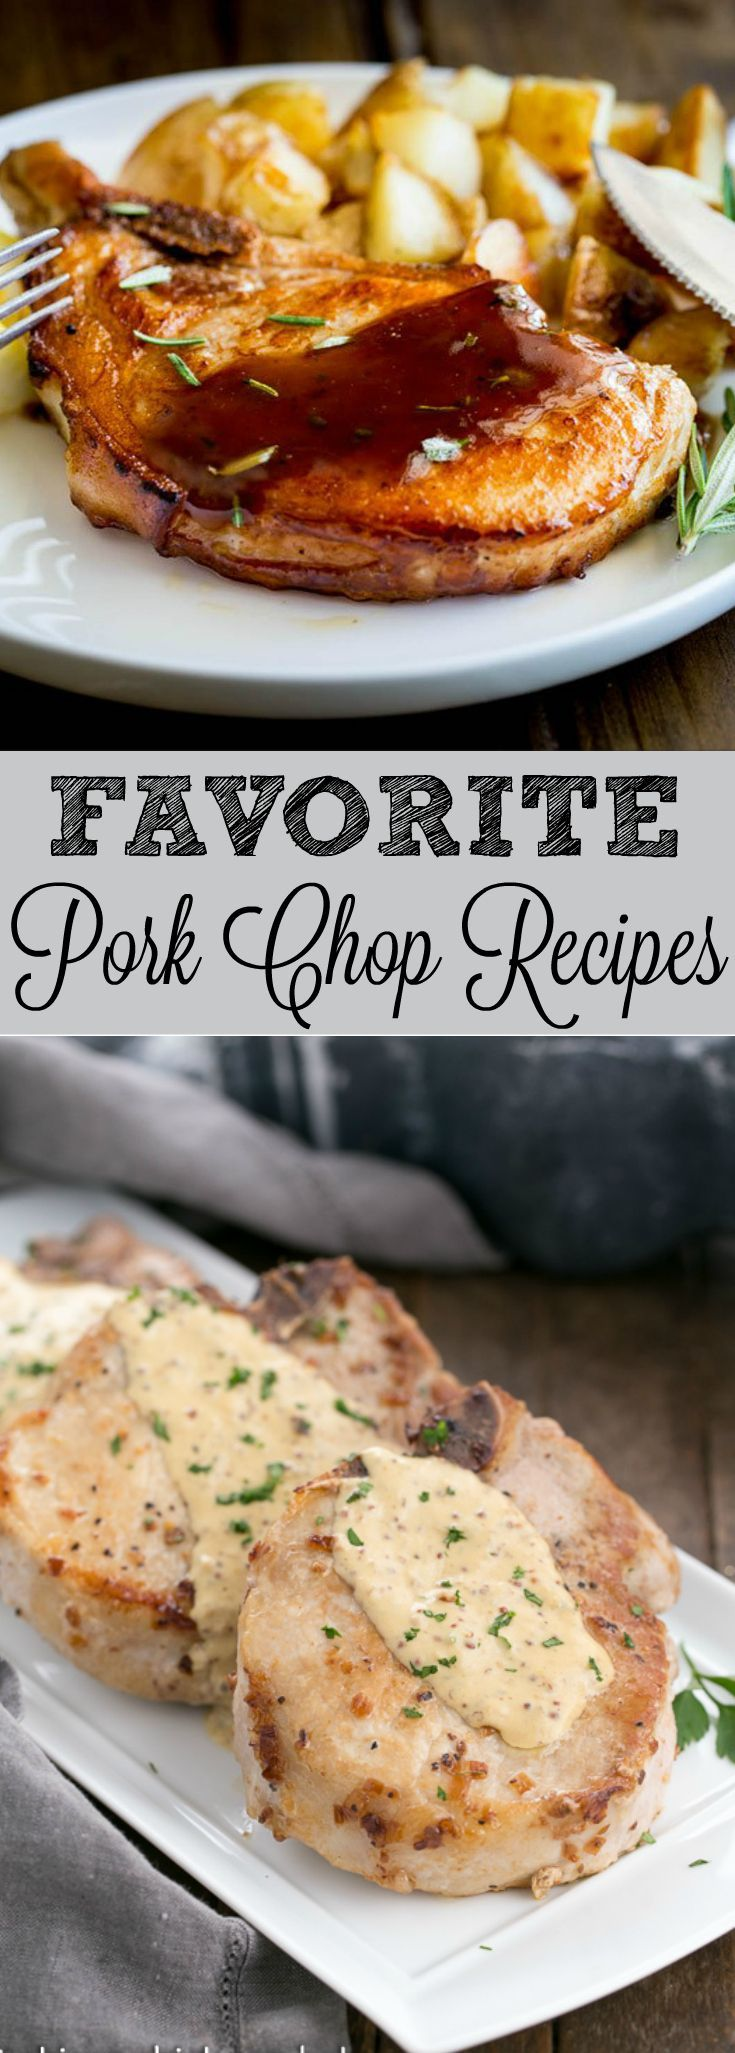 Sharing my favorite pork chop recipes from #SundaySupper line up from their Easy Pork Chop Recipe event. Which one will be your favorite?